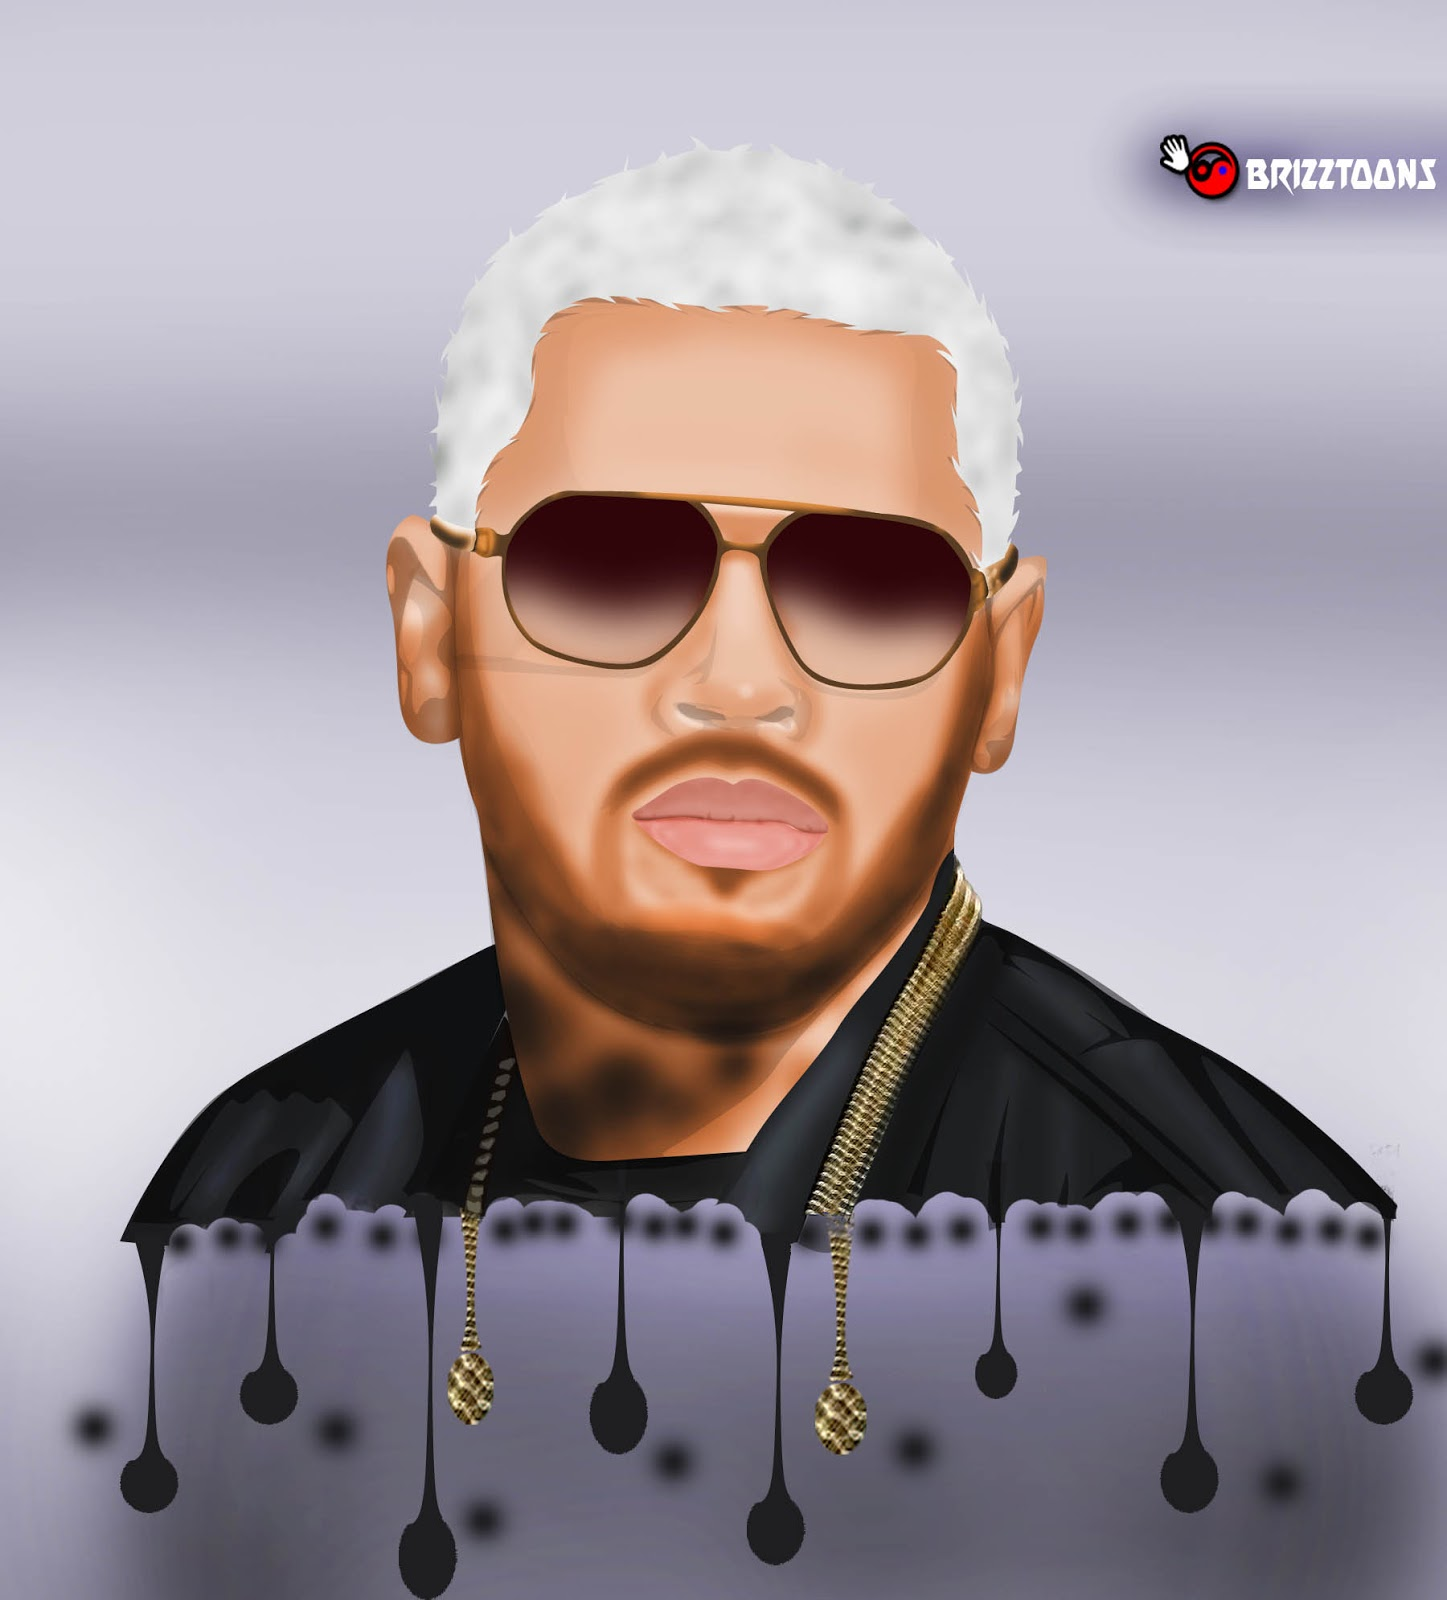 chris brown cartoon picture brizztoons